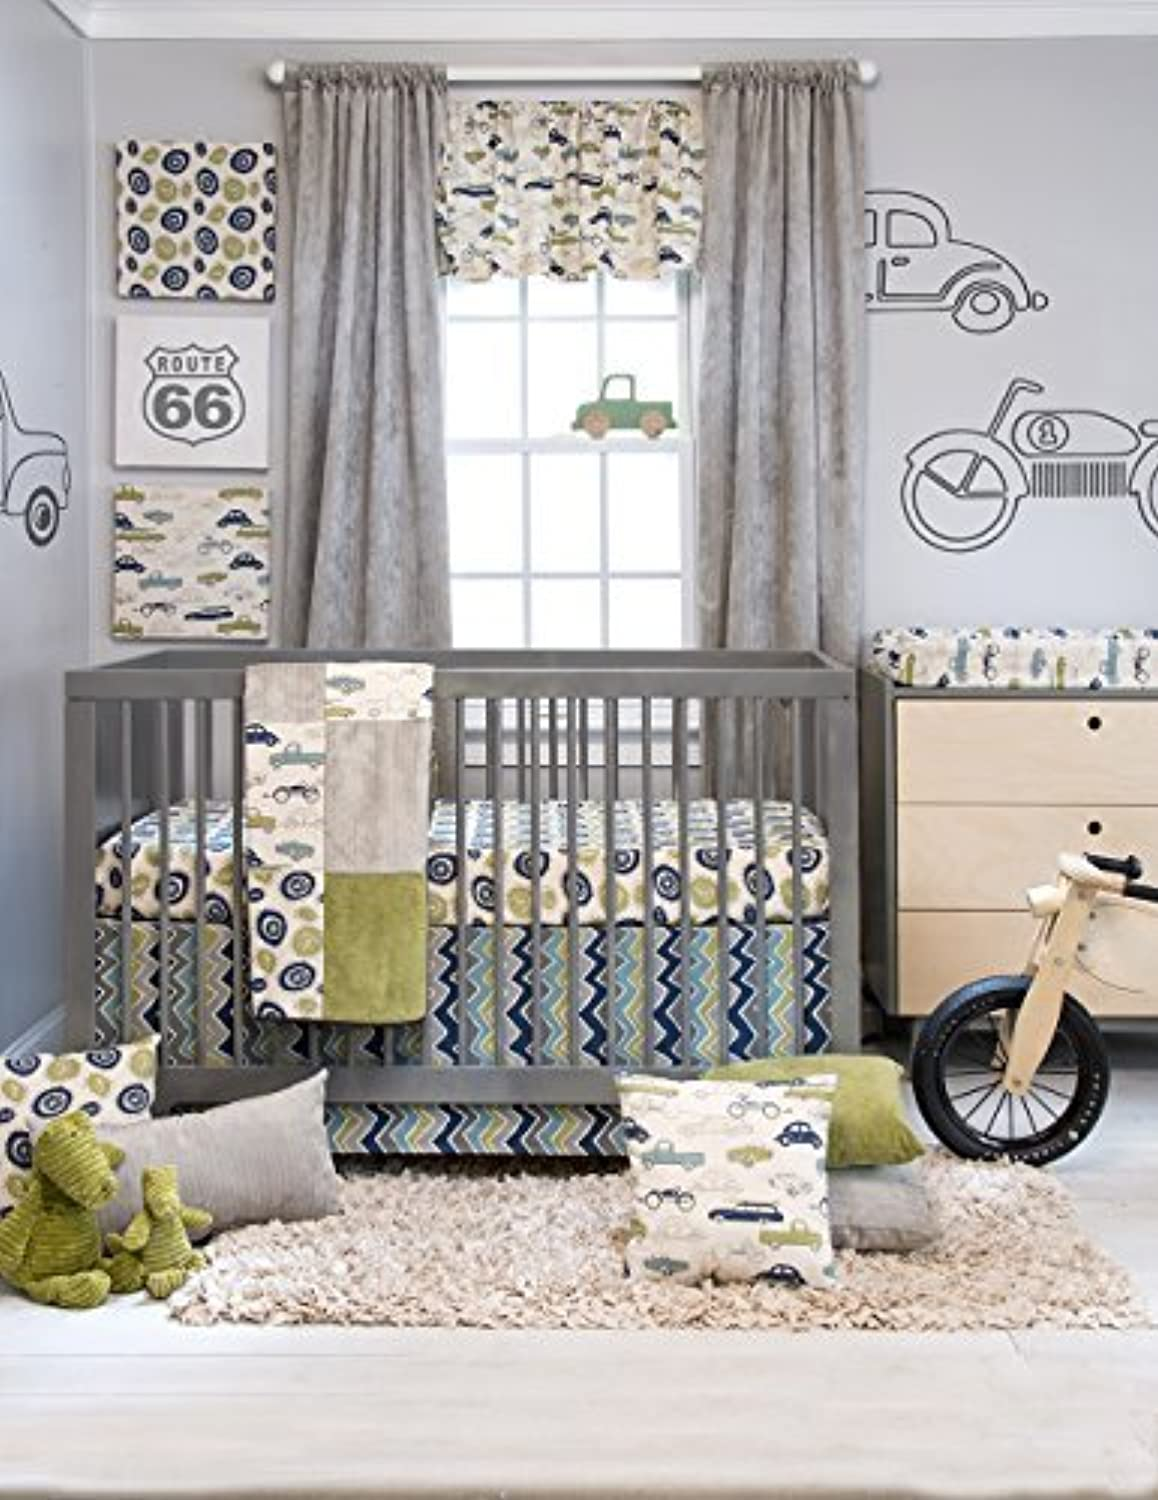 Sweet Potato Crib Bedding Set Uptown Traffic 3 Piece [並行輸入品]